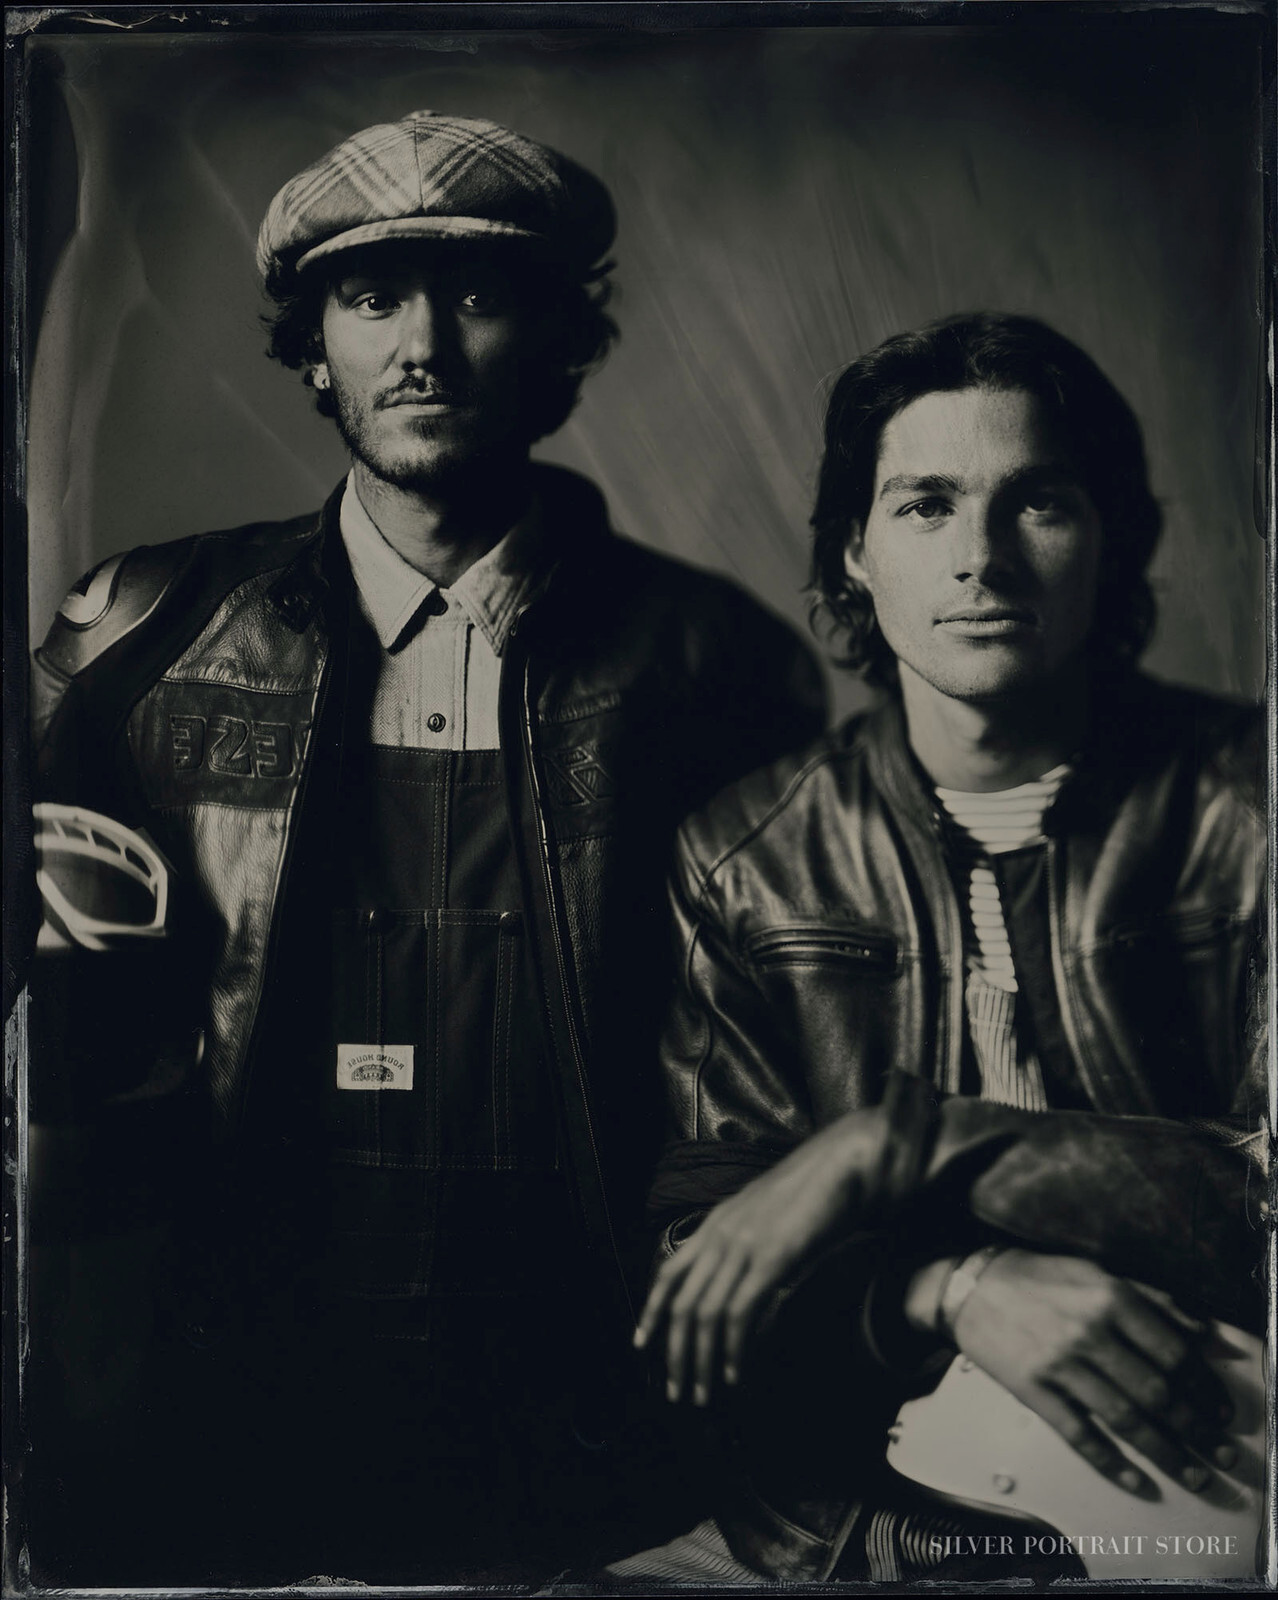 Fraser & Jack - Silver Portrait Store-Scan from Wet plate collodion-Tintype 20 x 25 cm